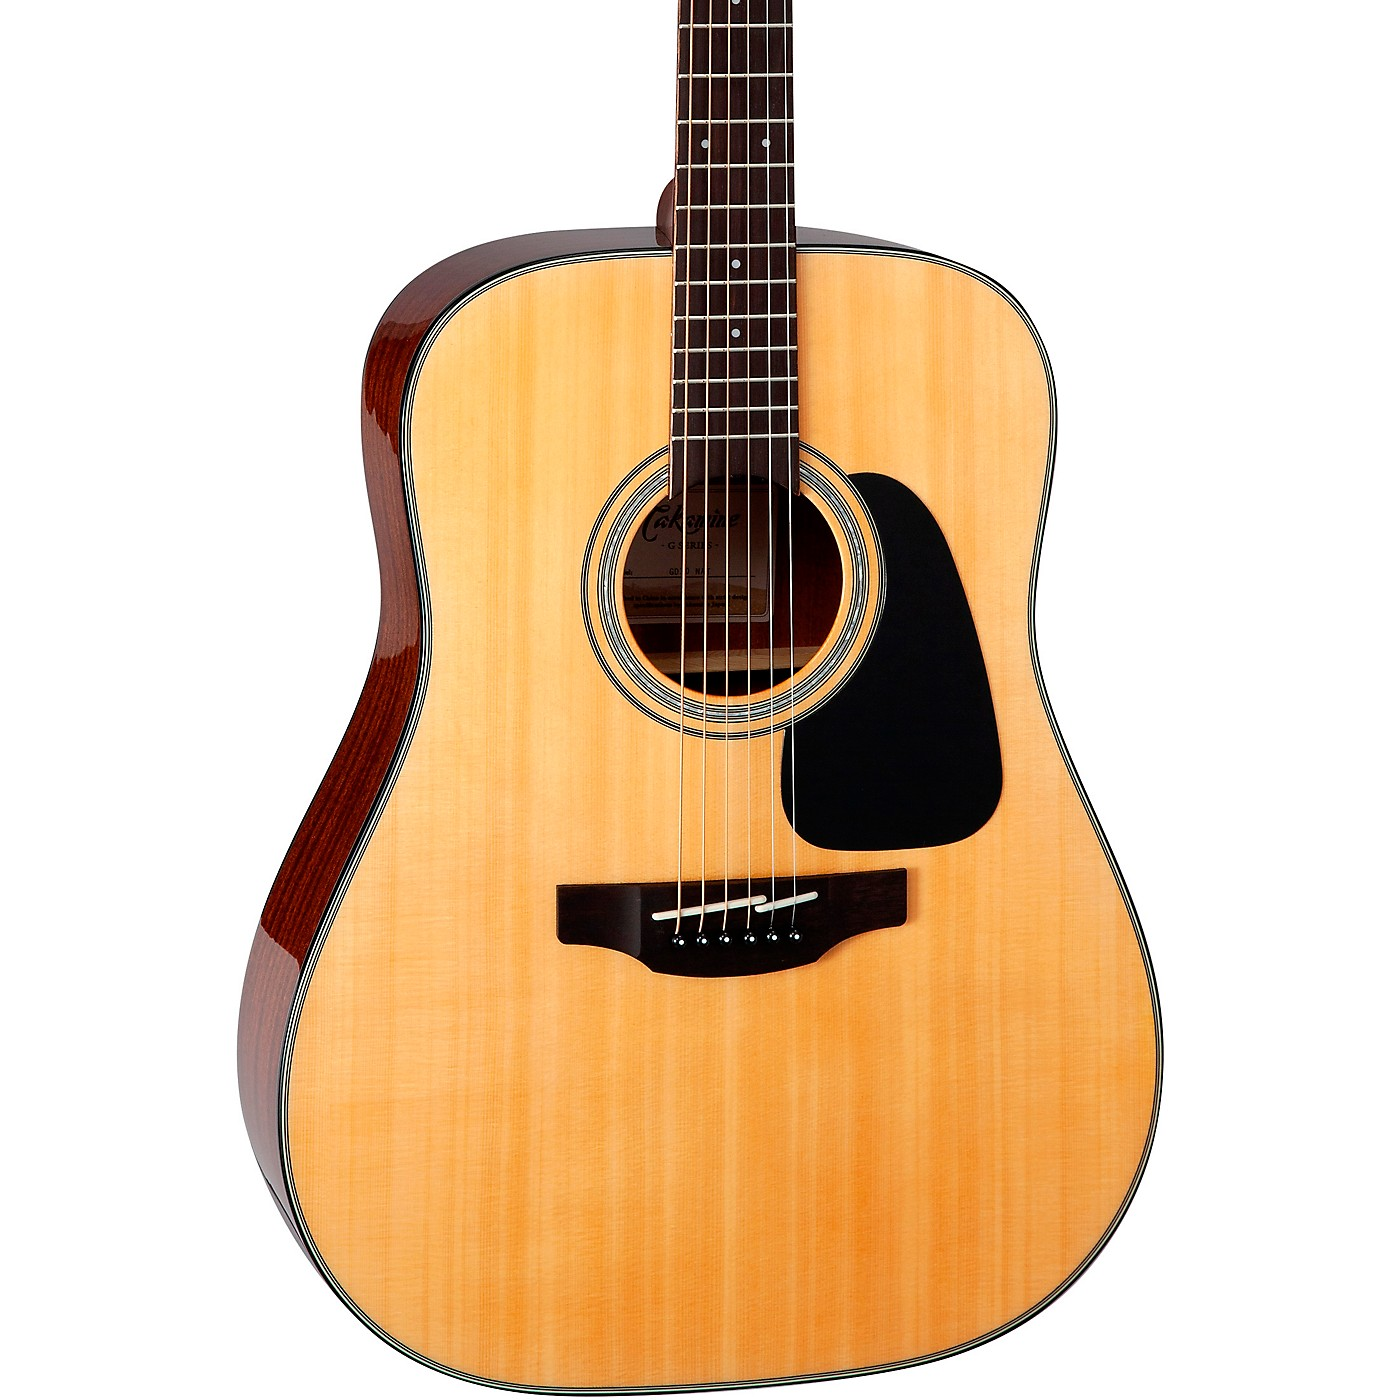 Takamine G Series Dreadnought Solid Top Acoustic Guitar thumbnail